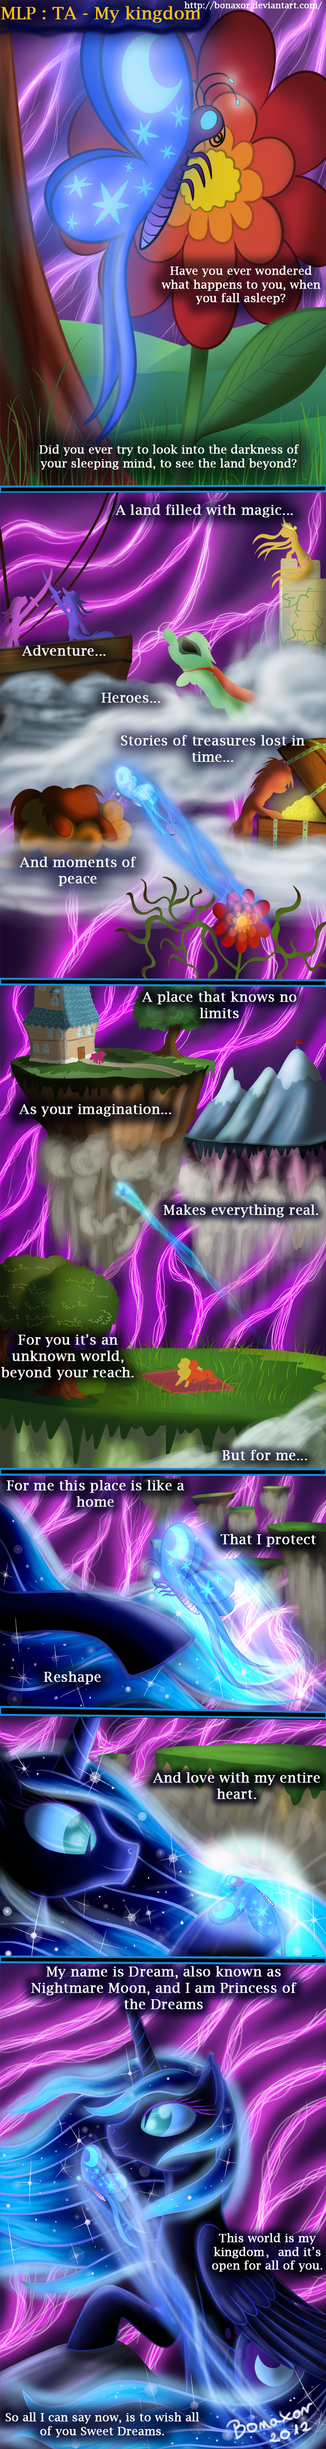 MLP: TA - My kingdom by Bonaxor